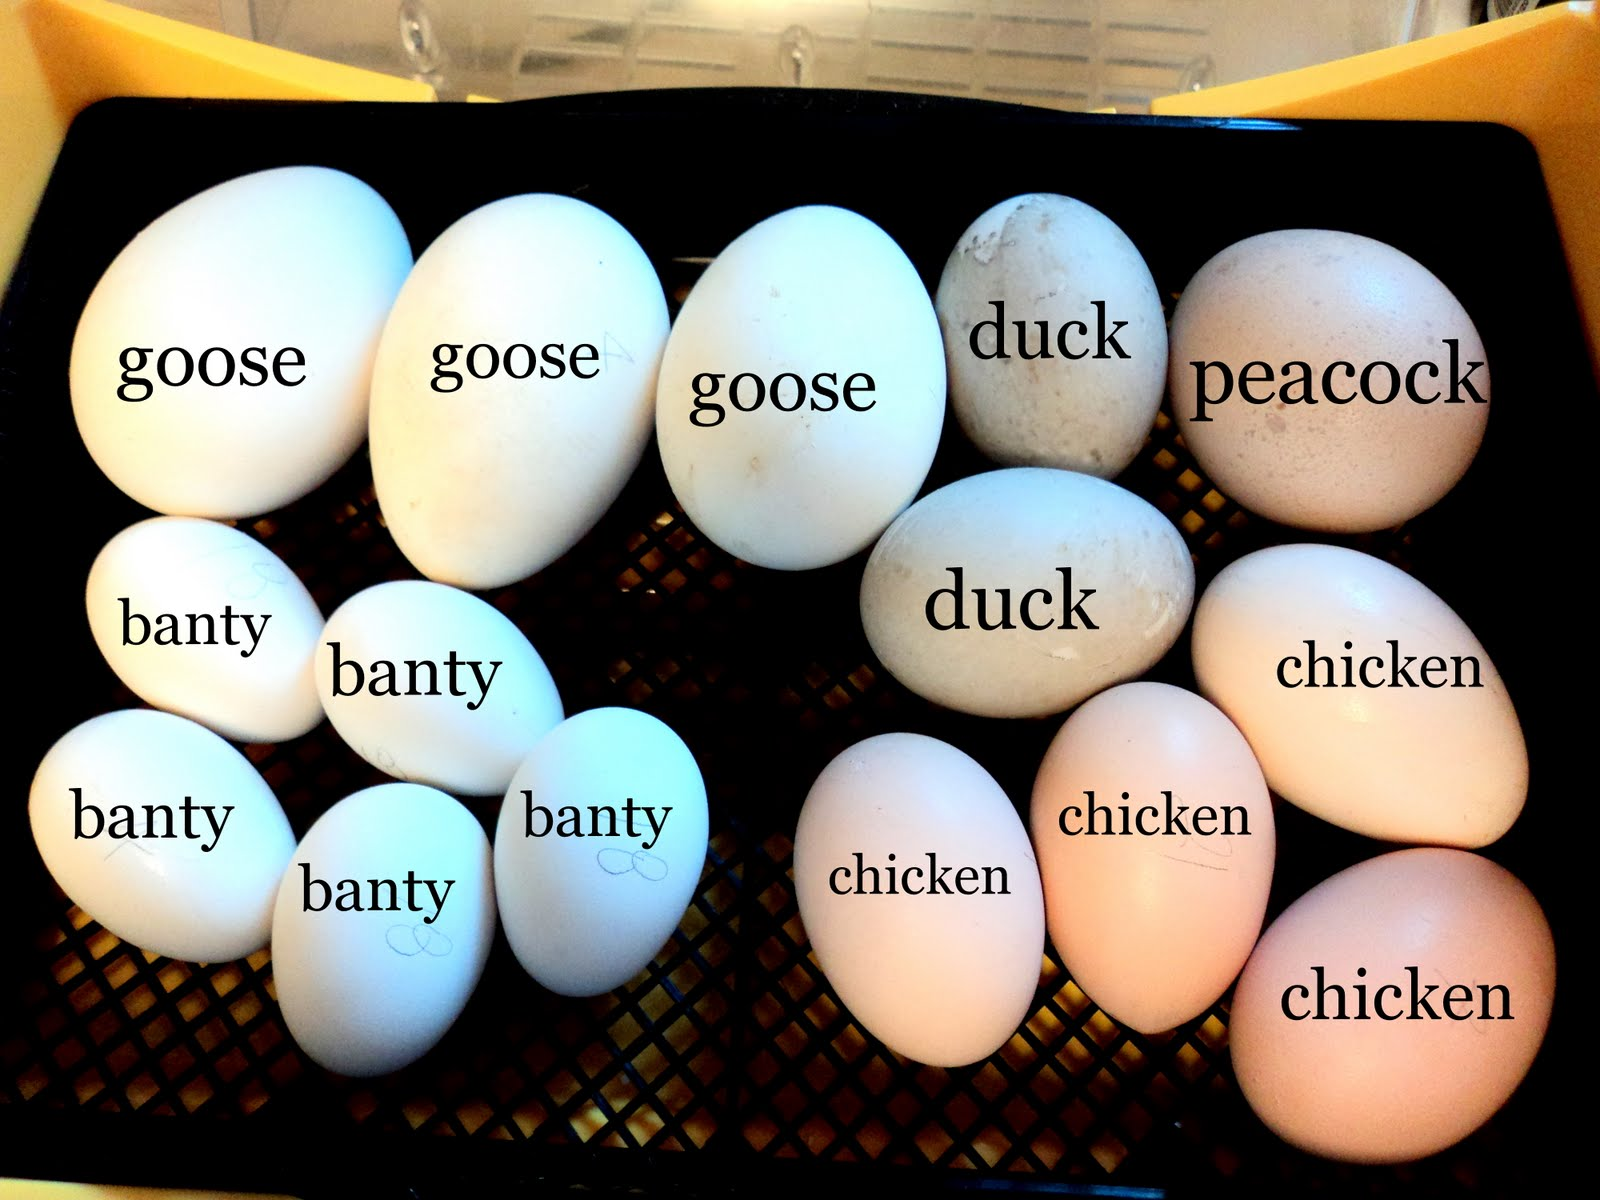 Compare Size Of Eggs Banty Duck Chicken Goose Peacock